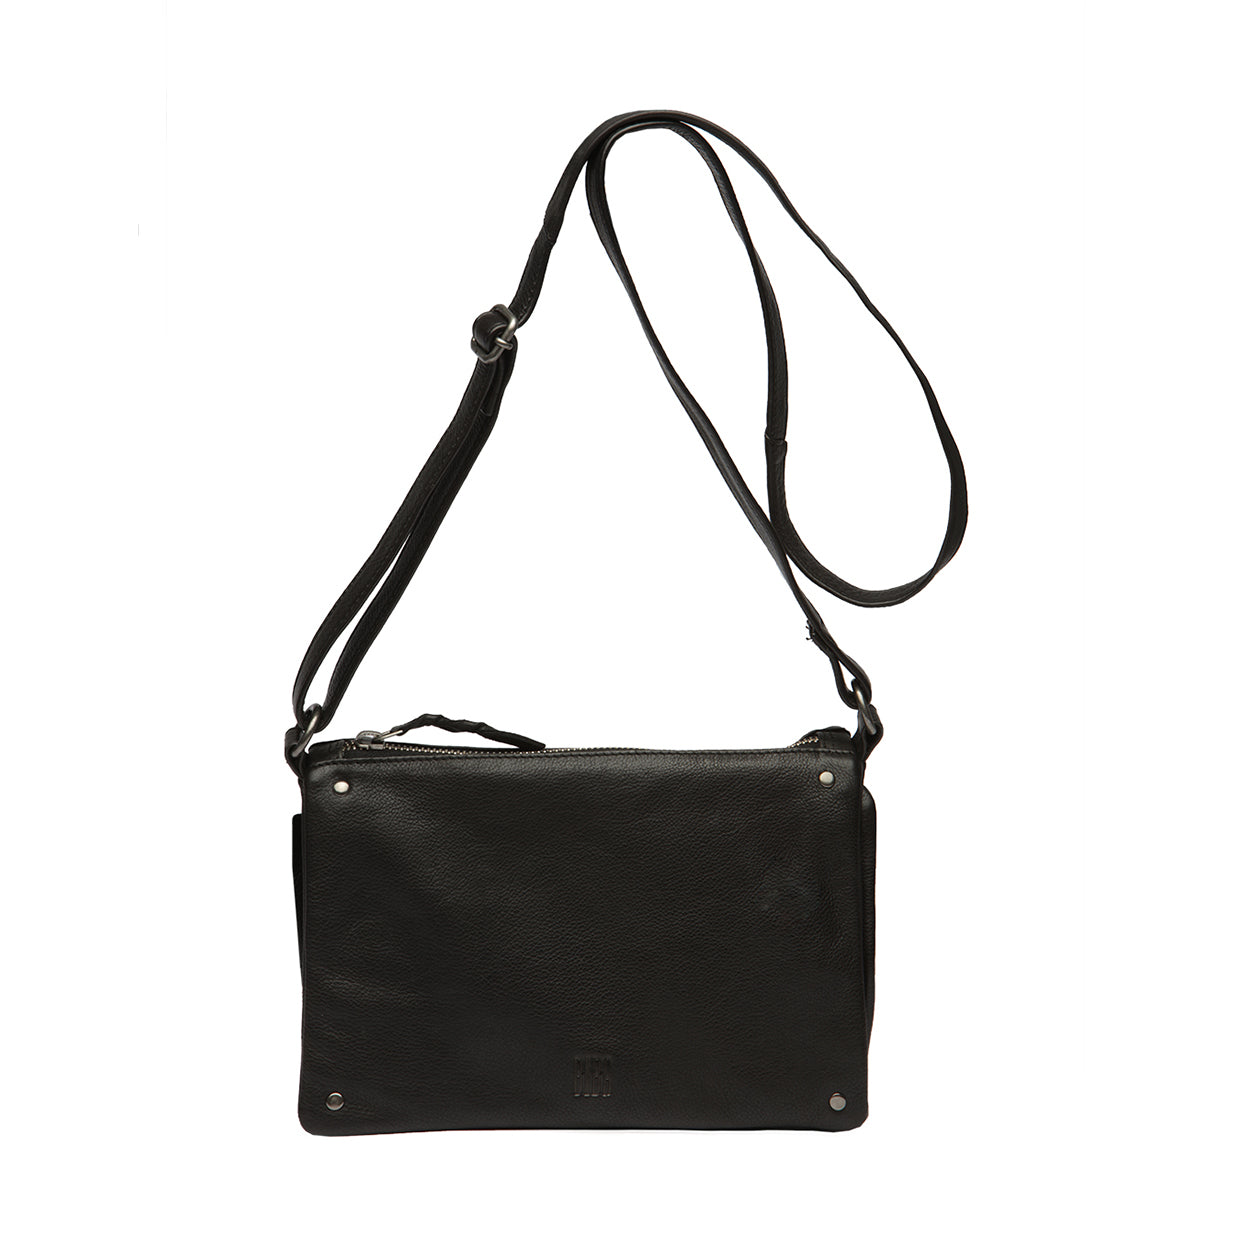 NYHET Veske Natalia. Cross Bag, medium. Black